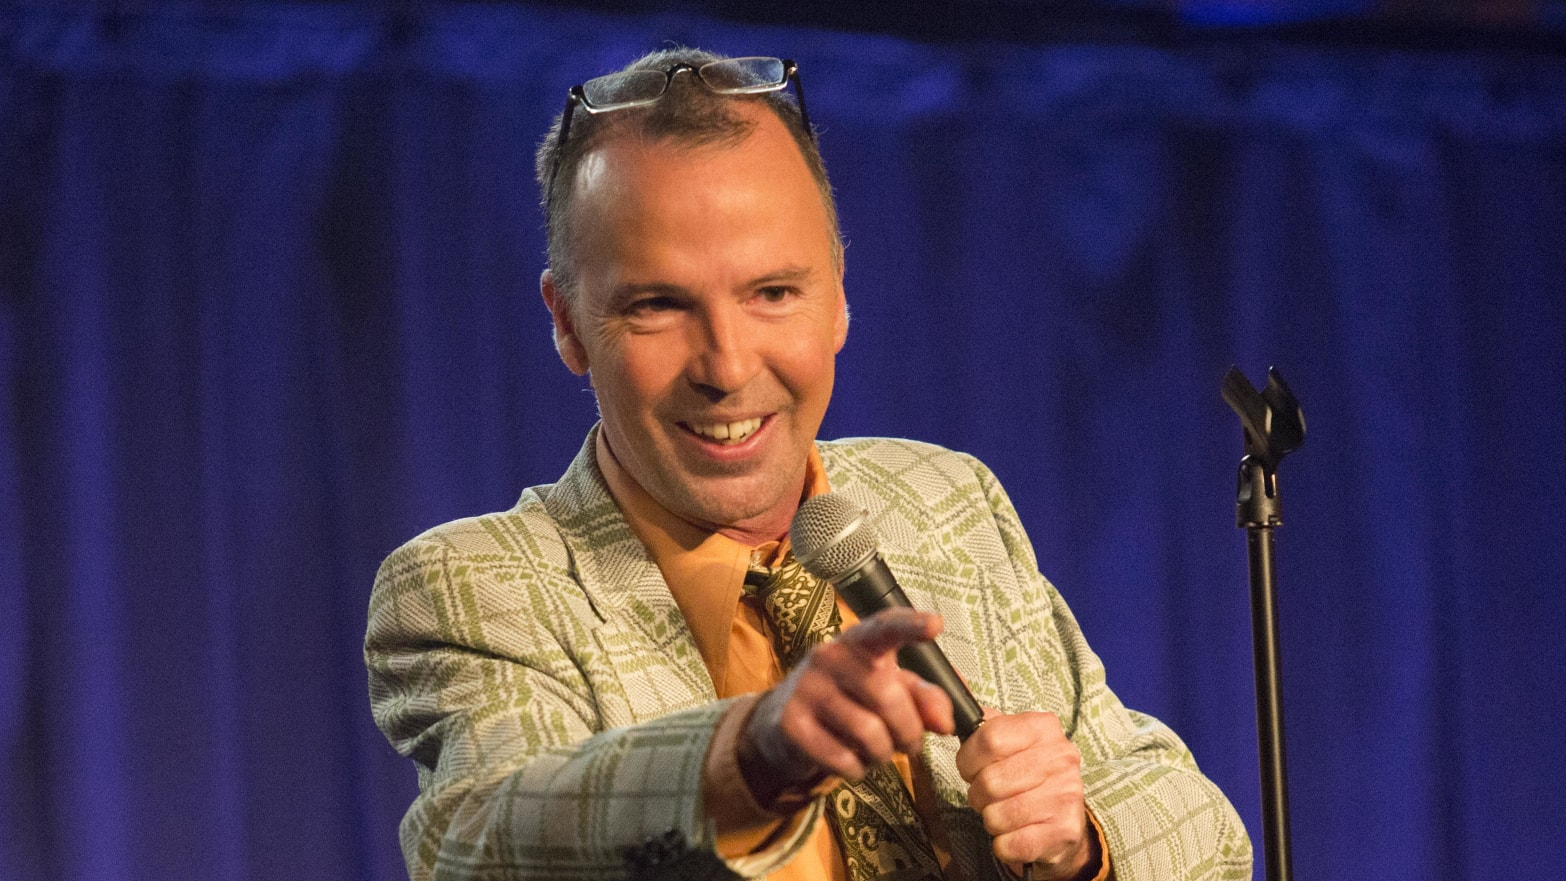 The 53-year old son of father (?) and mother(?) Doug Stanhope in 2021 photo. Doug Stanhope earned a  million dollar salary - leaving the net worth at  million in 2021